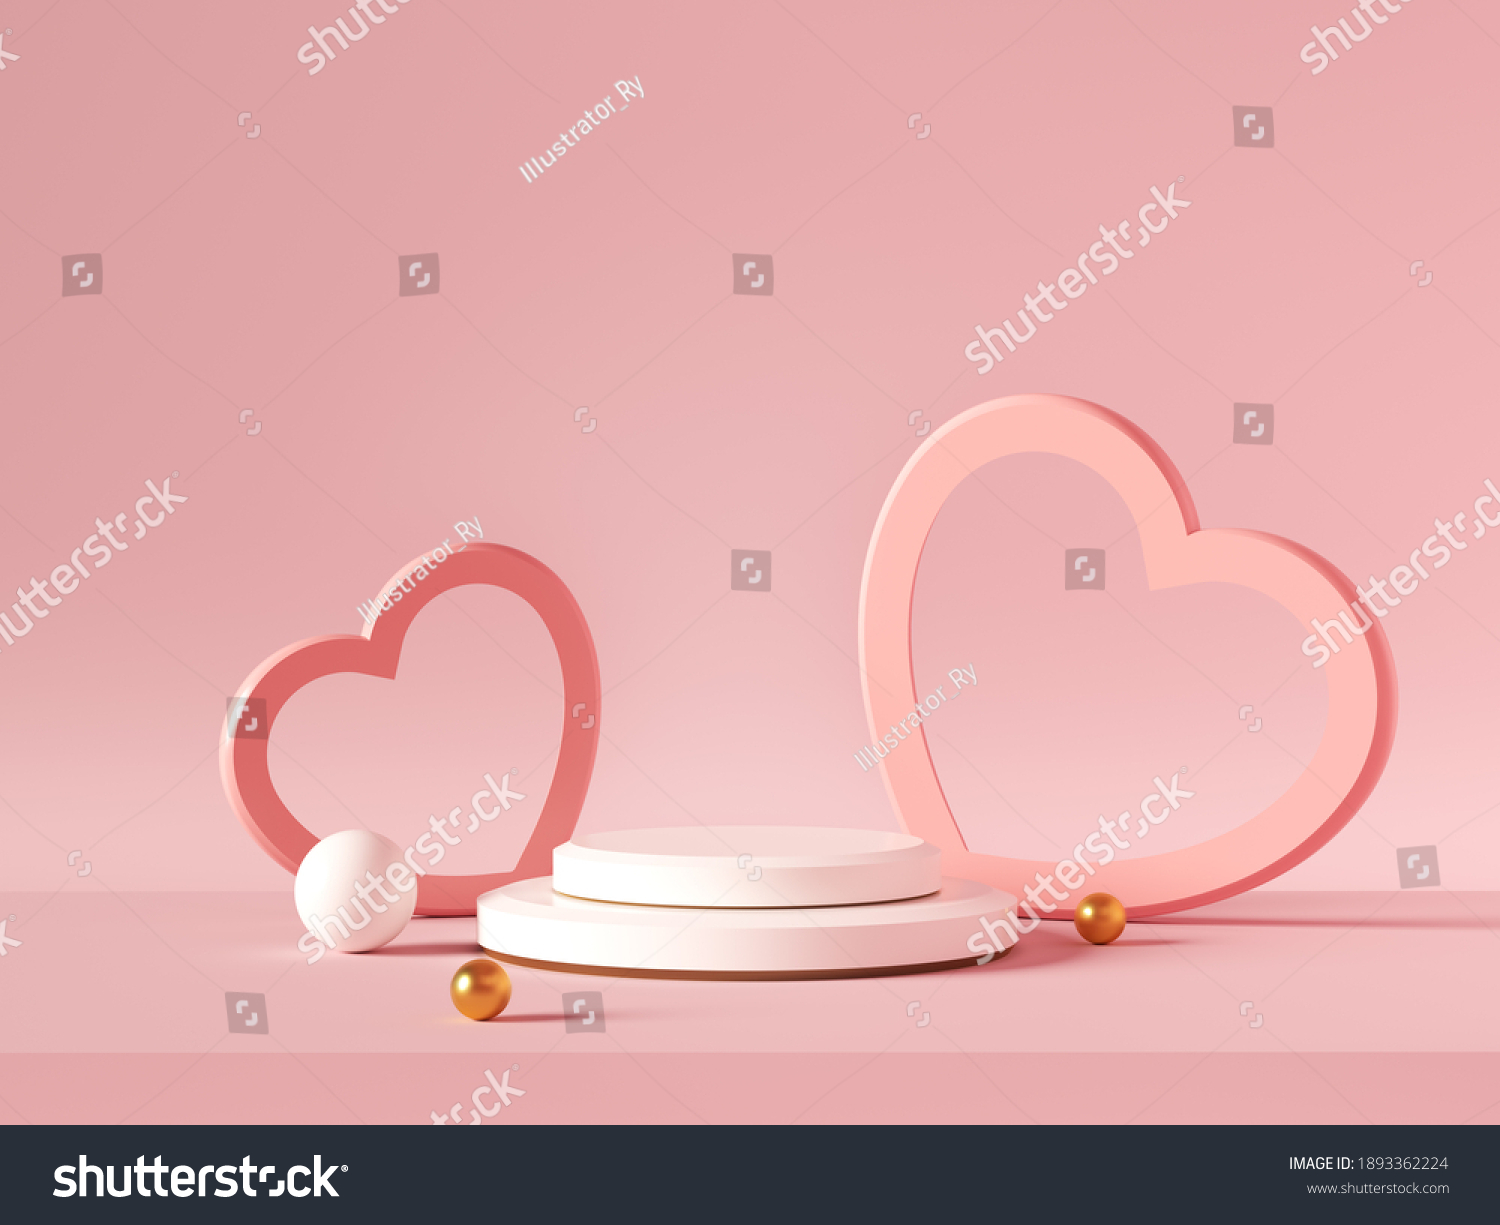 Minimal background, mock up with podium for product display,Abstract white geometry shape background minimalist Valentine's day pink background,Abstract mock up backgroundup 3D rendering. #1893362224